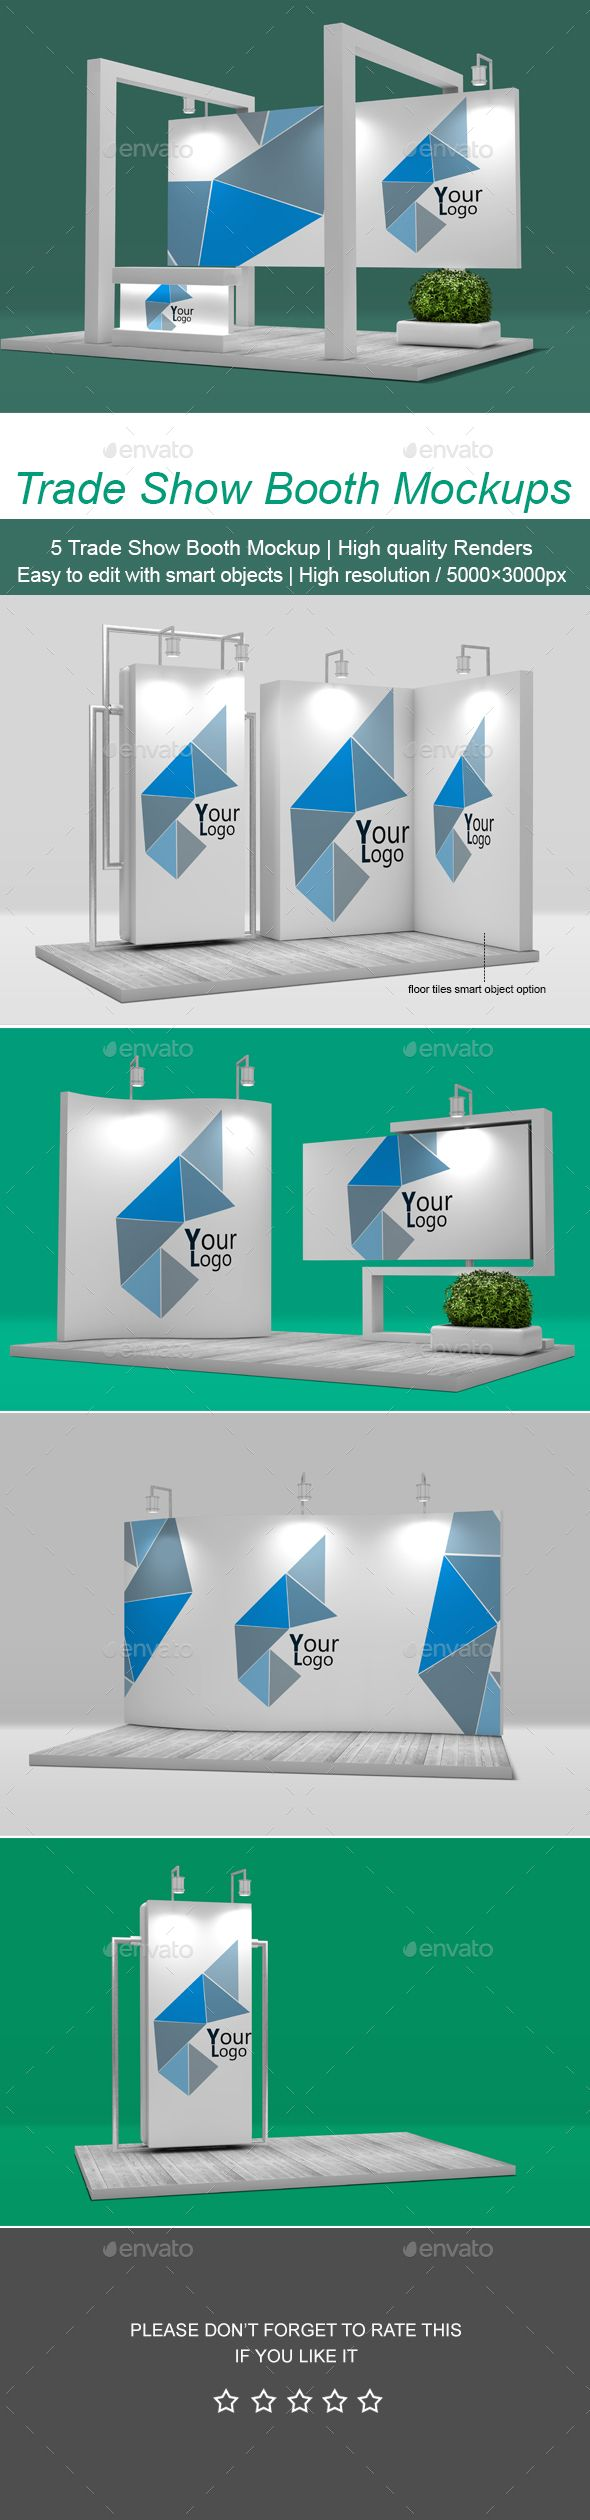 Trade Show #Booth #Mockup pinned by @digitalphaser                                                                                                                                                                                 More